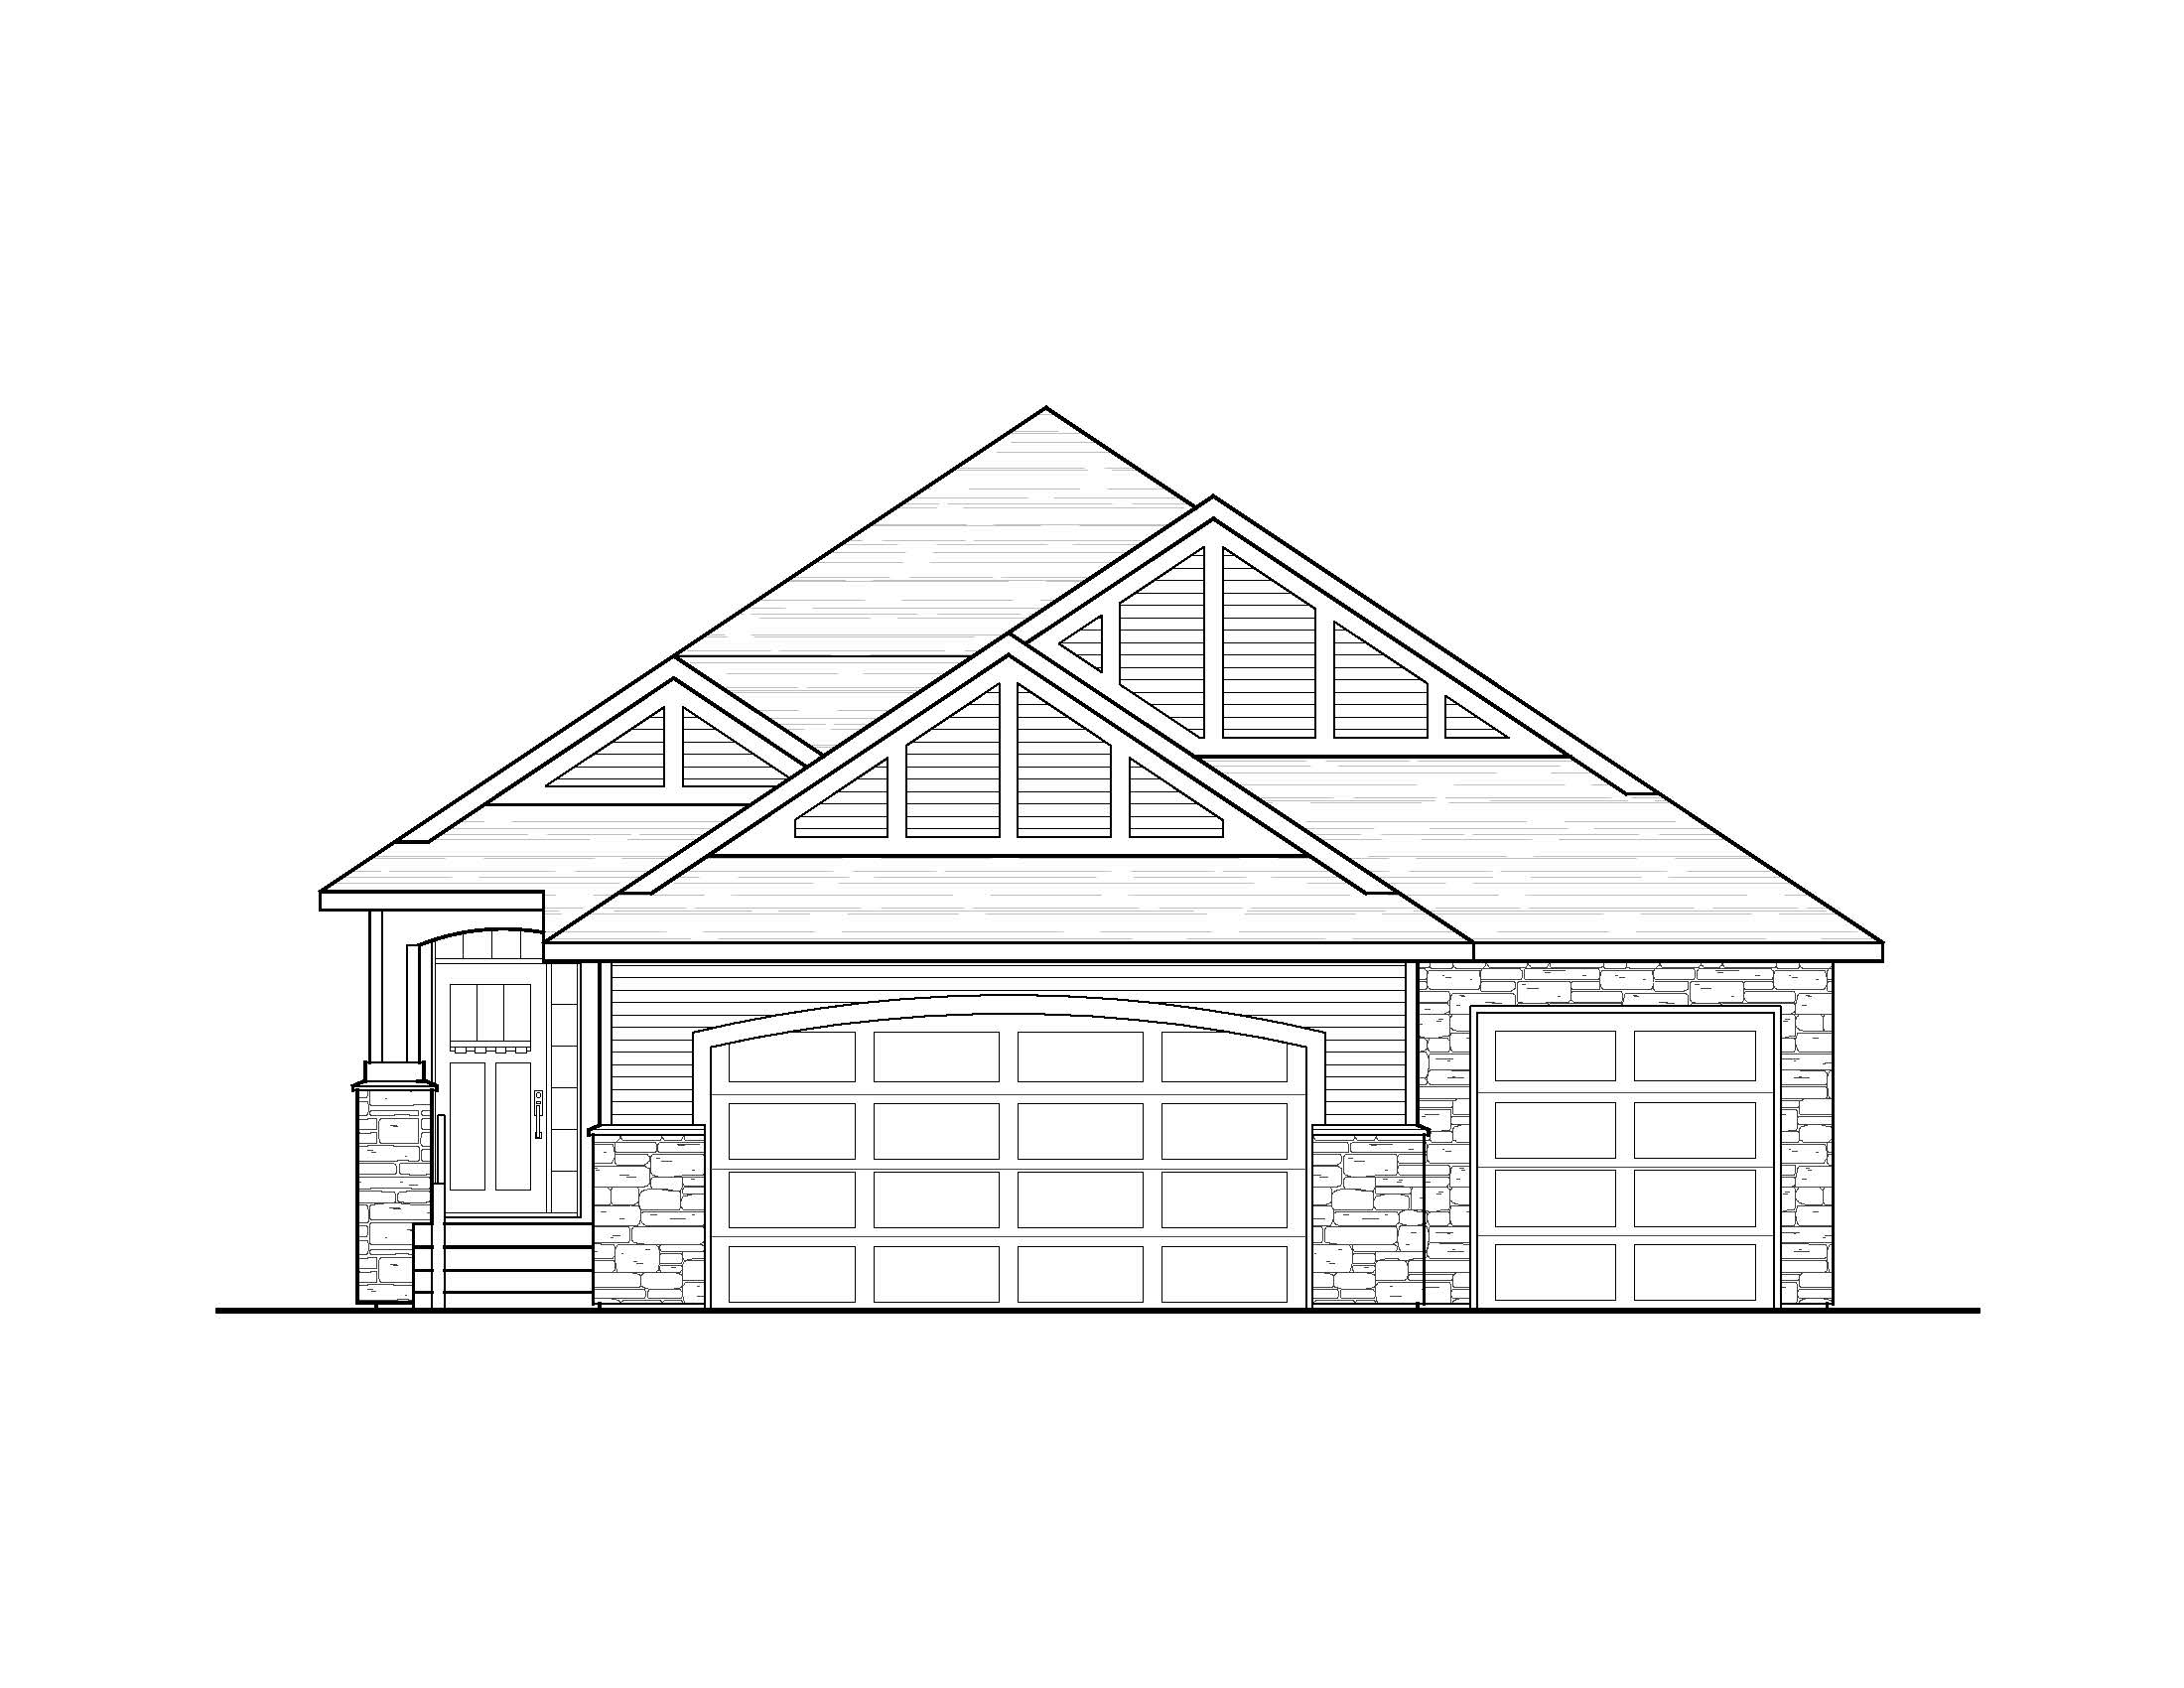 D'arcy - Bungalow | 1,488 sf